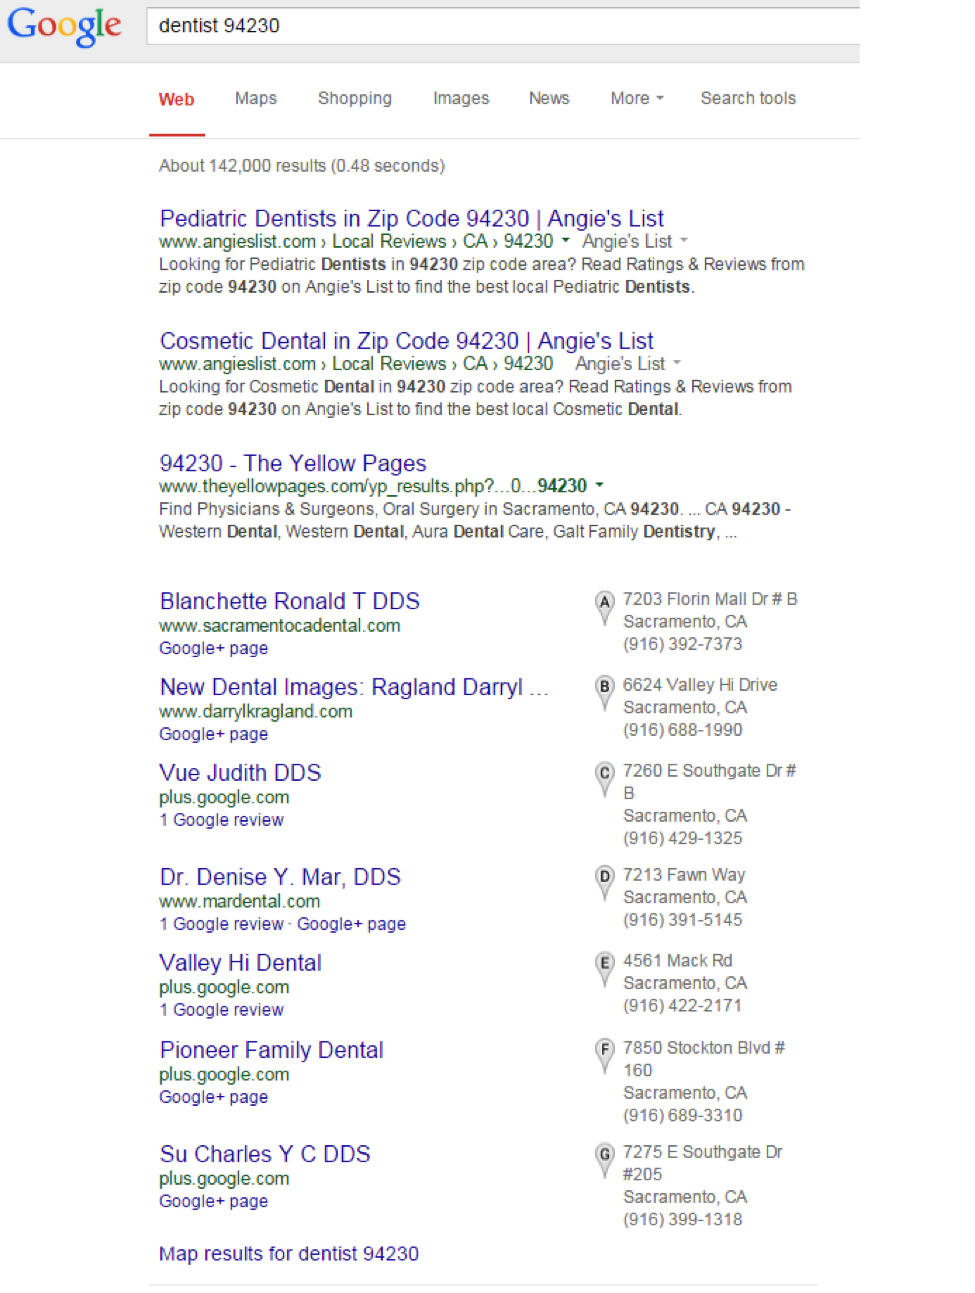 Google page 1 search results for dentist 94230 as seen on March 26, 2015